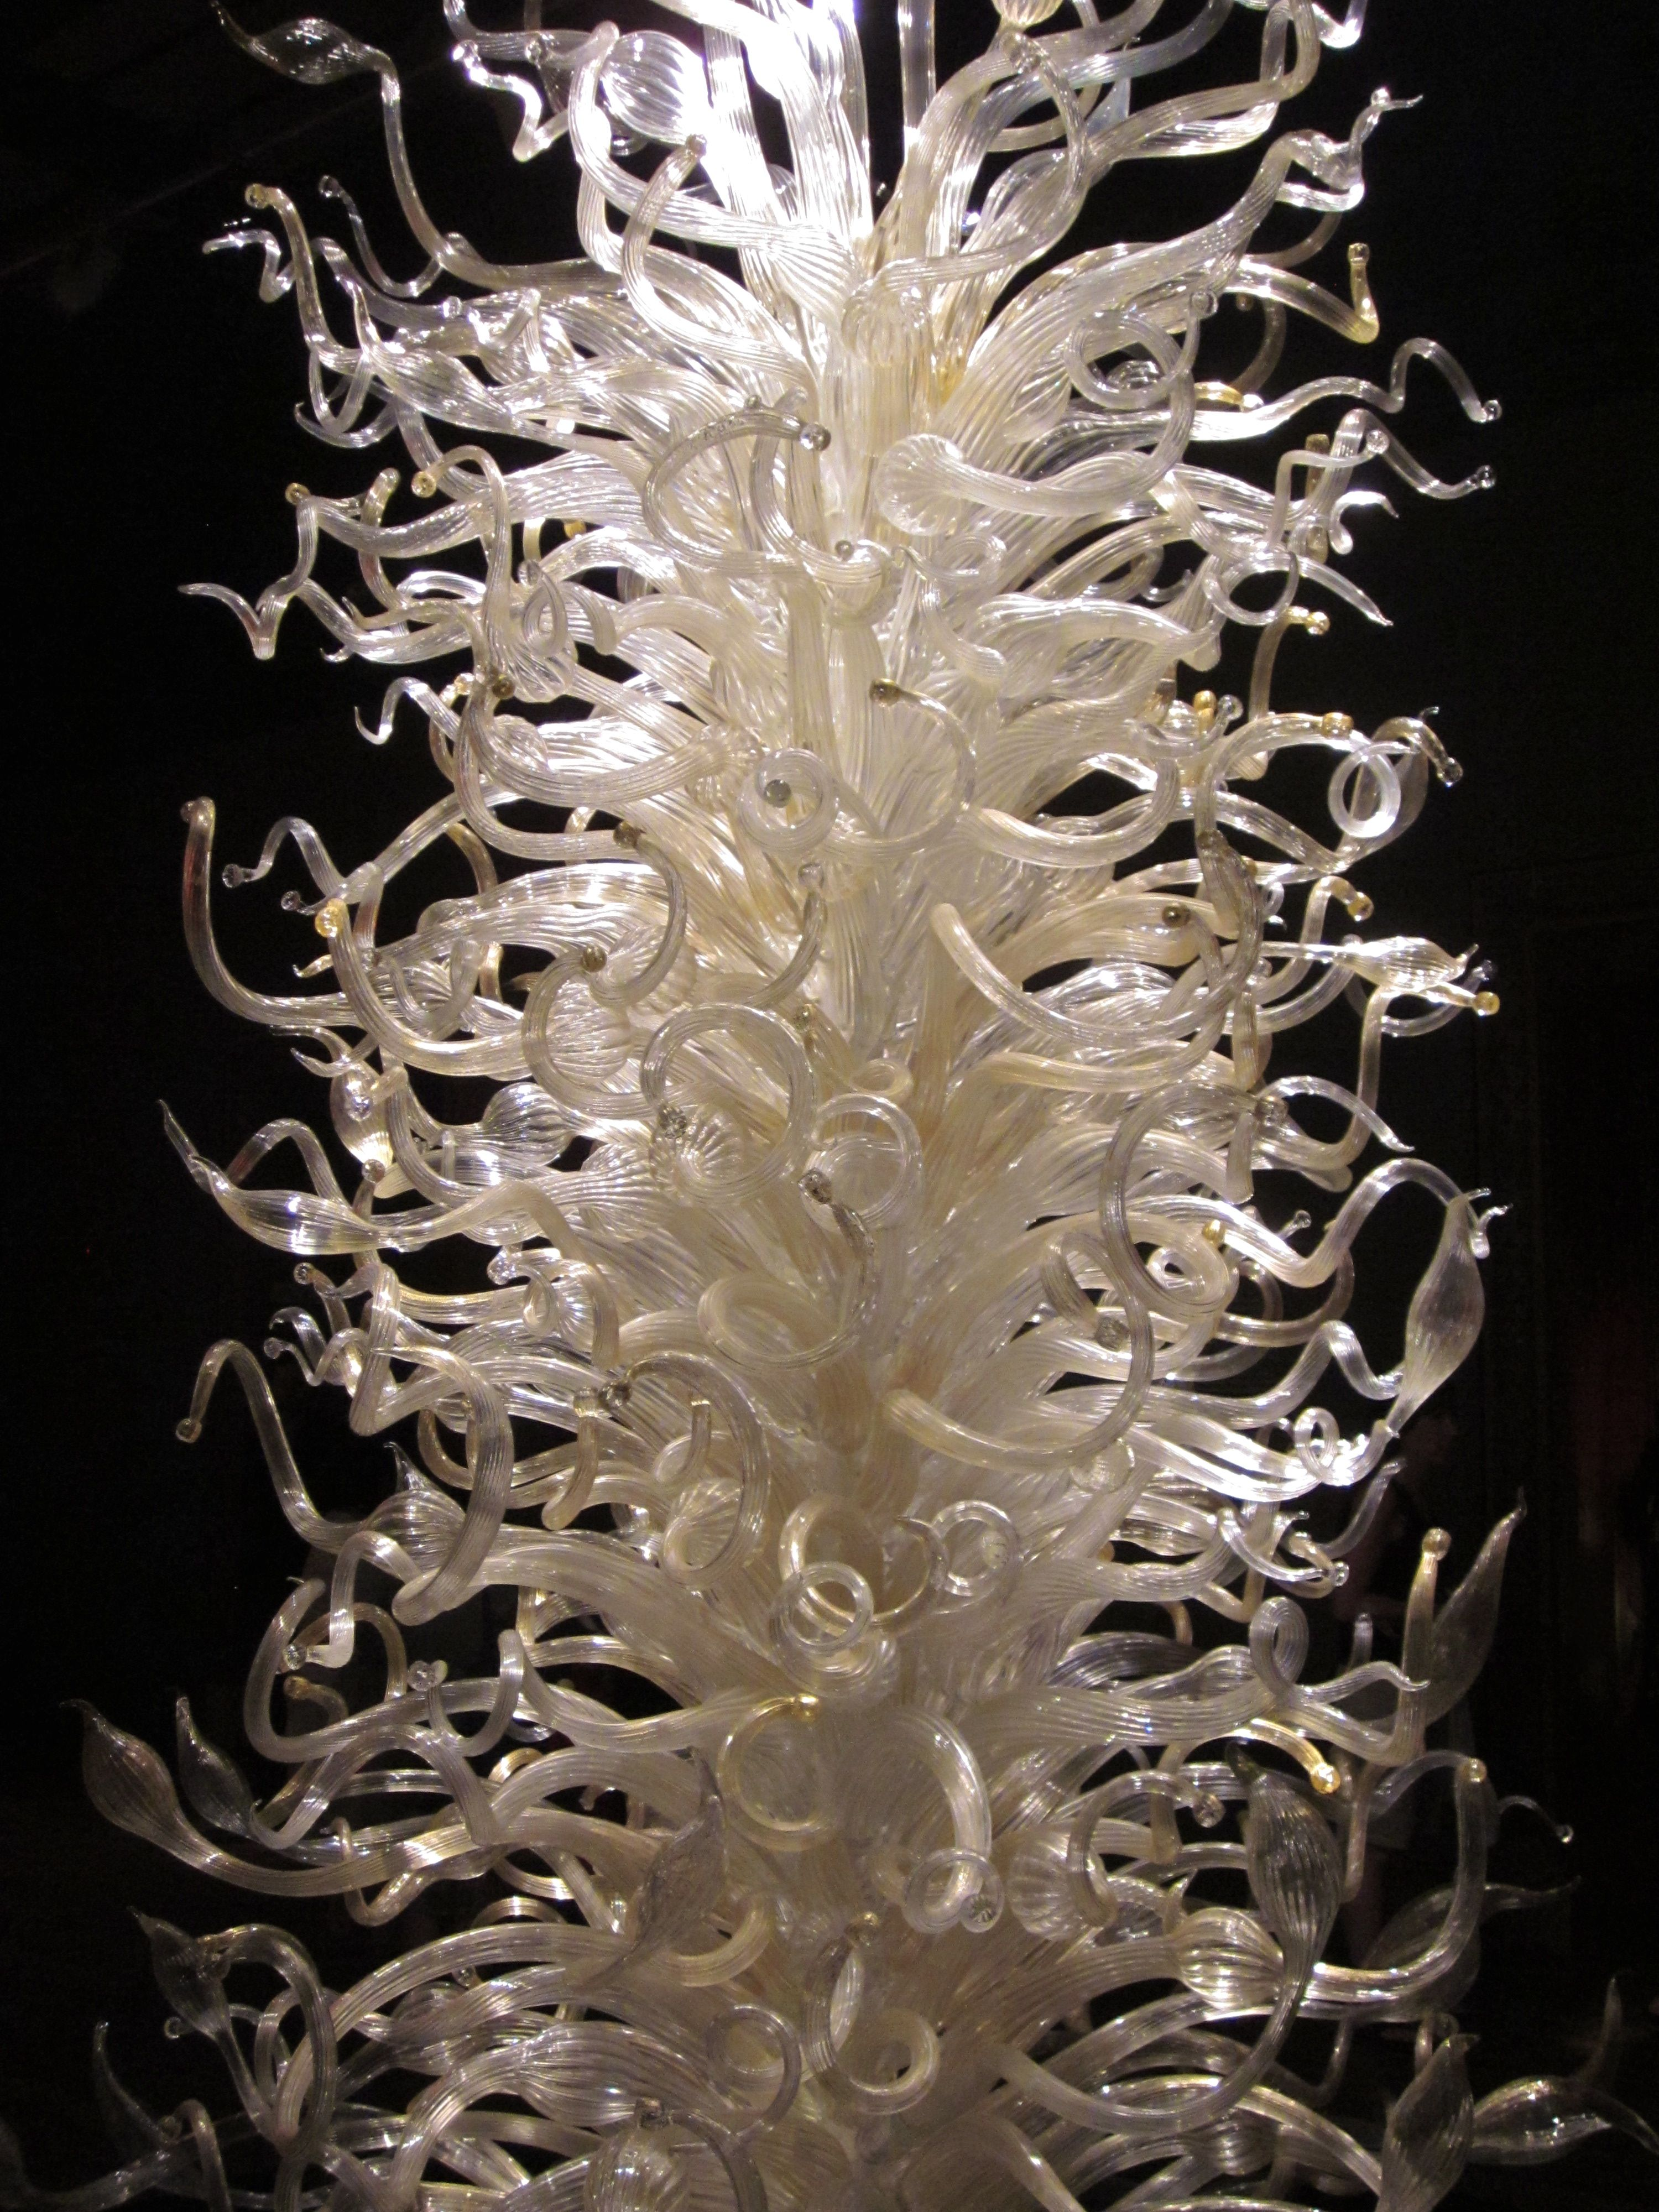 Dale Chihuly Exhibit | Reflecting on Glass: the Dale Chihuly Exhibition in Montreal | All ...